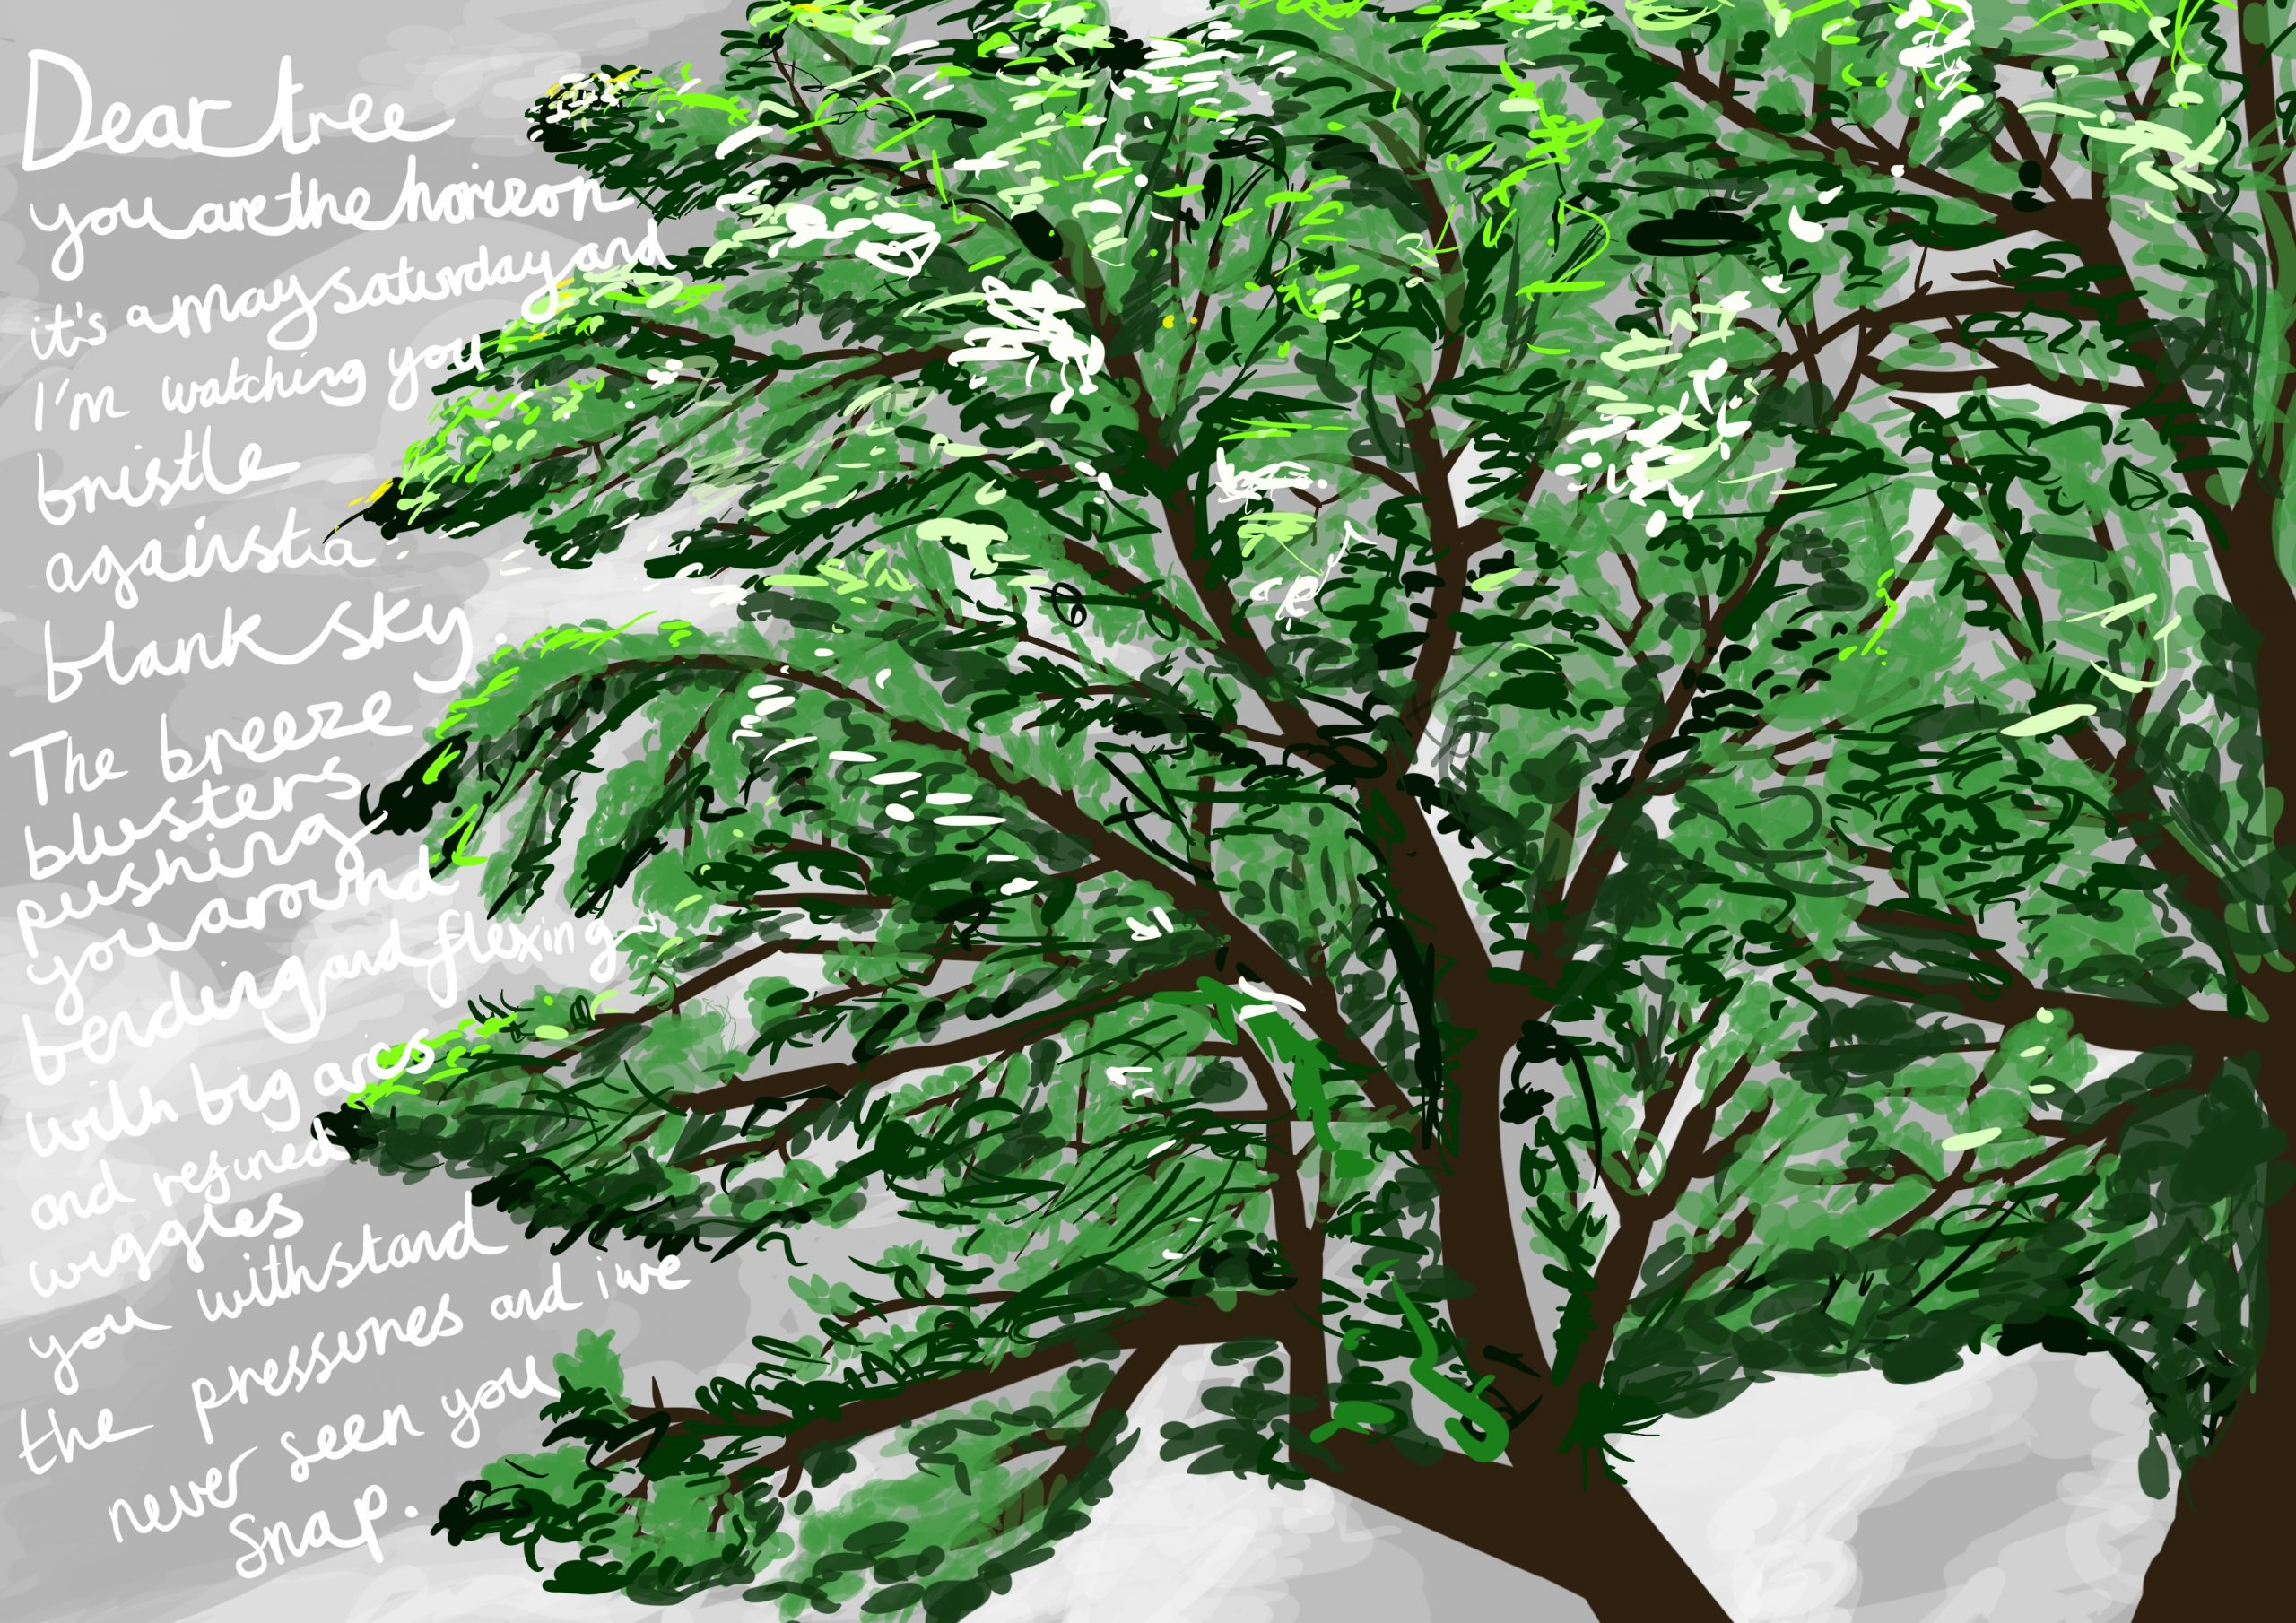 Image shows a digital drawing by Touretteshero of one of the sycamore trees she can see from her bedroom window. The sycamore is a lush early summer green on a stormy afternoon. The sky is grey, blustery and changeable with the following accompanying text: 'Dear Tree, you are the horizon. It's a May Saturday and I'm watching you bristle against a blank sky. The breeze blusters, pushing you around. Bending and flexing with big arcs and refined wiggles you withstand the pressures, and I've never seen you snap.'